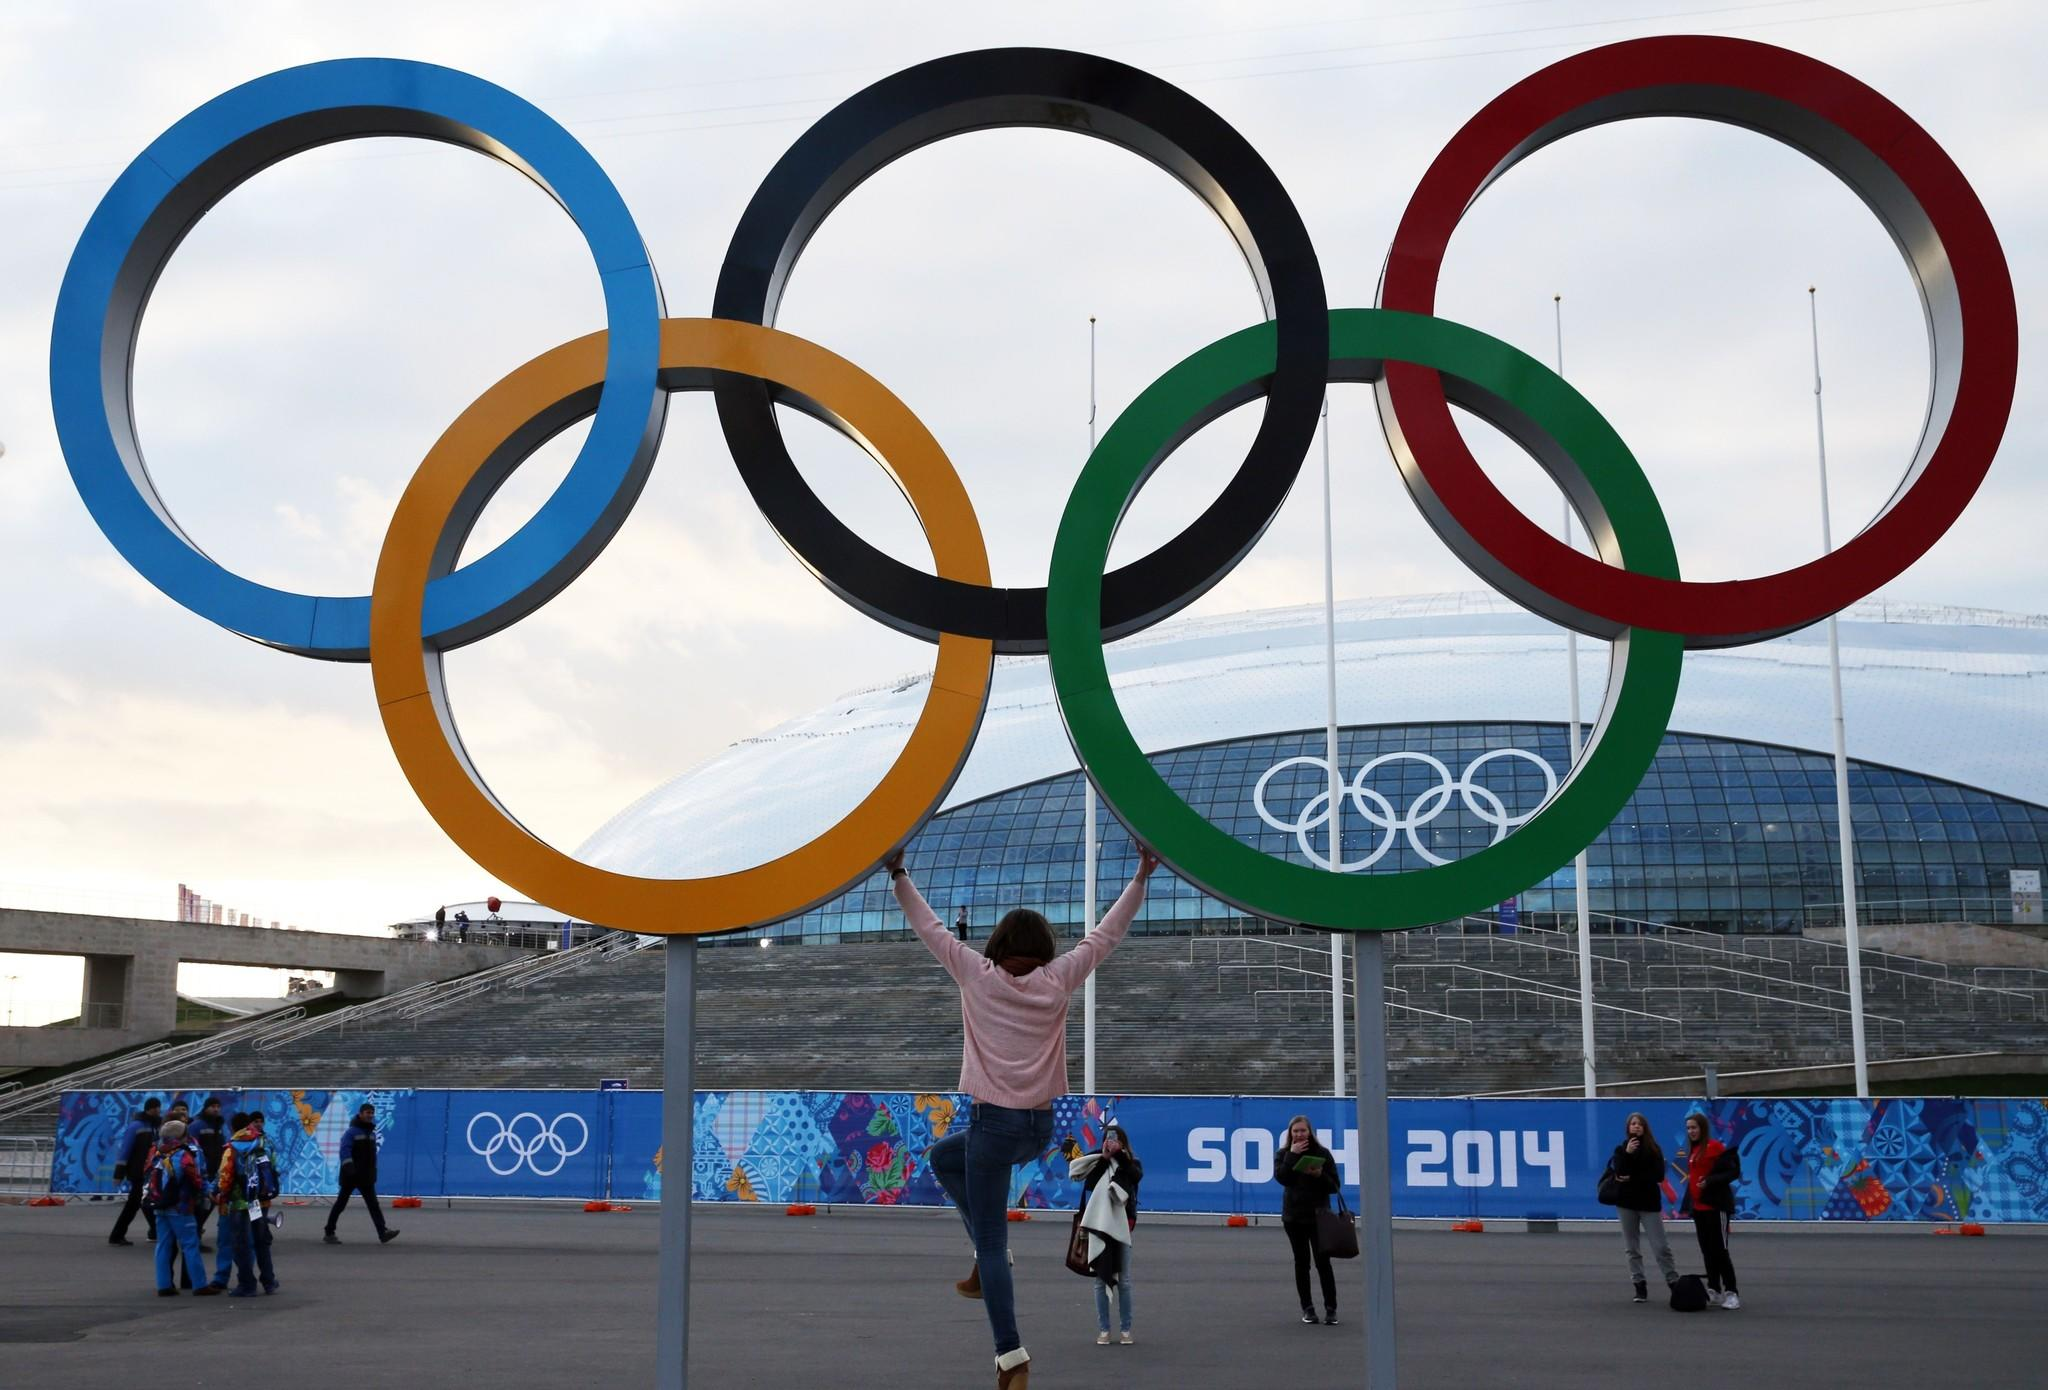 Visitors take pictures with the Olympic rings outside the Bolshoy Ice Dome, where some ice hockey games will take place, prior to the start of the 2014 Sochi WInter Olympics.